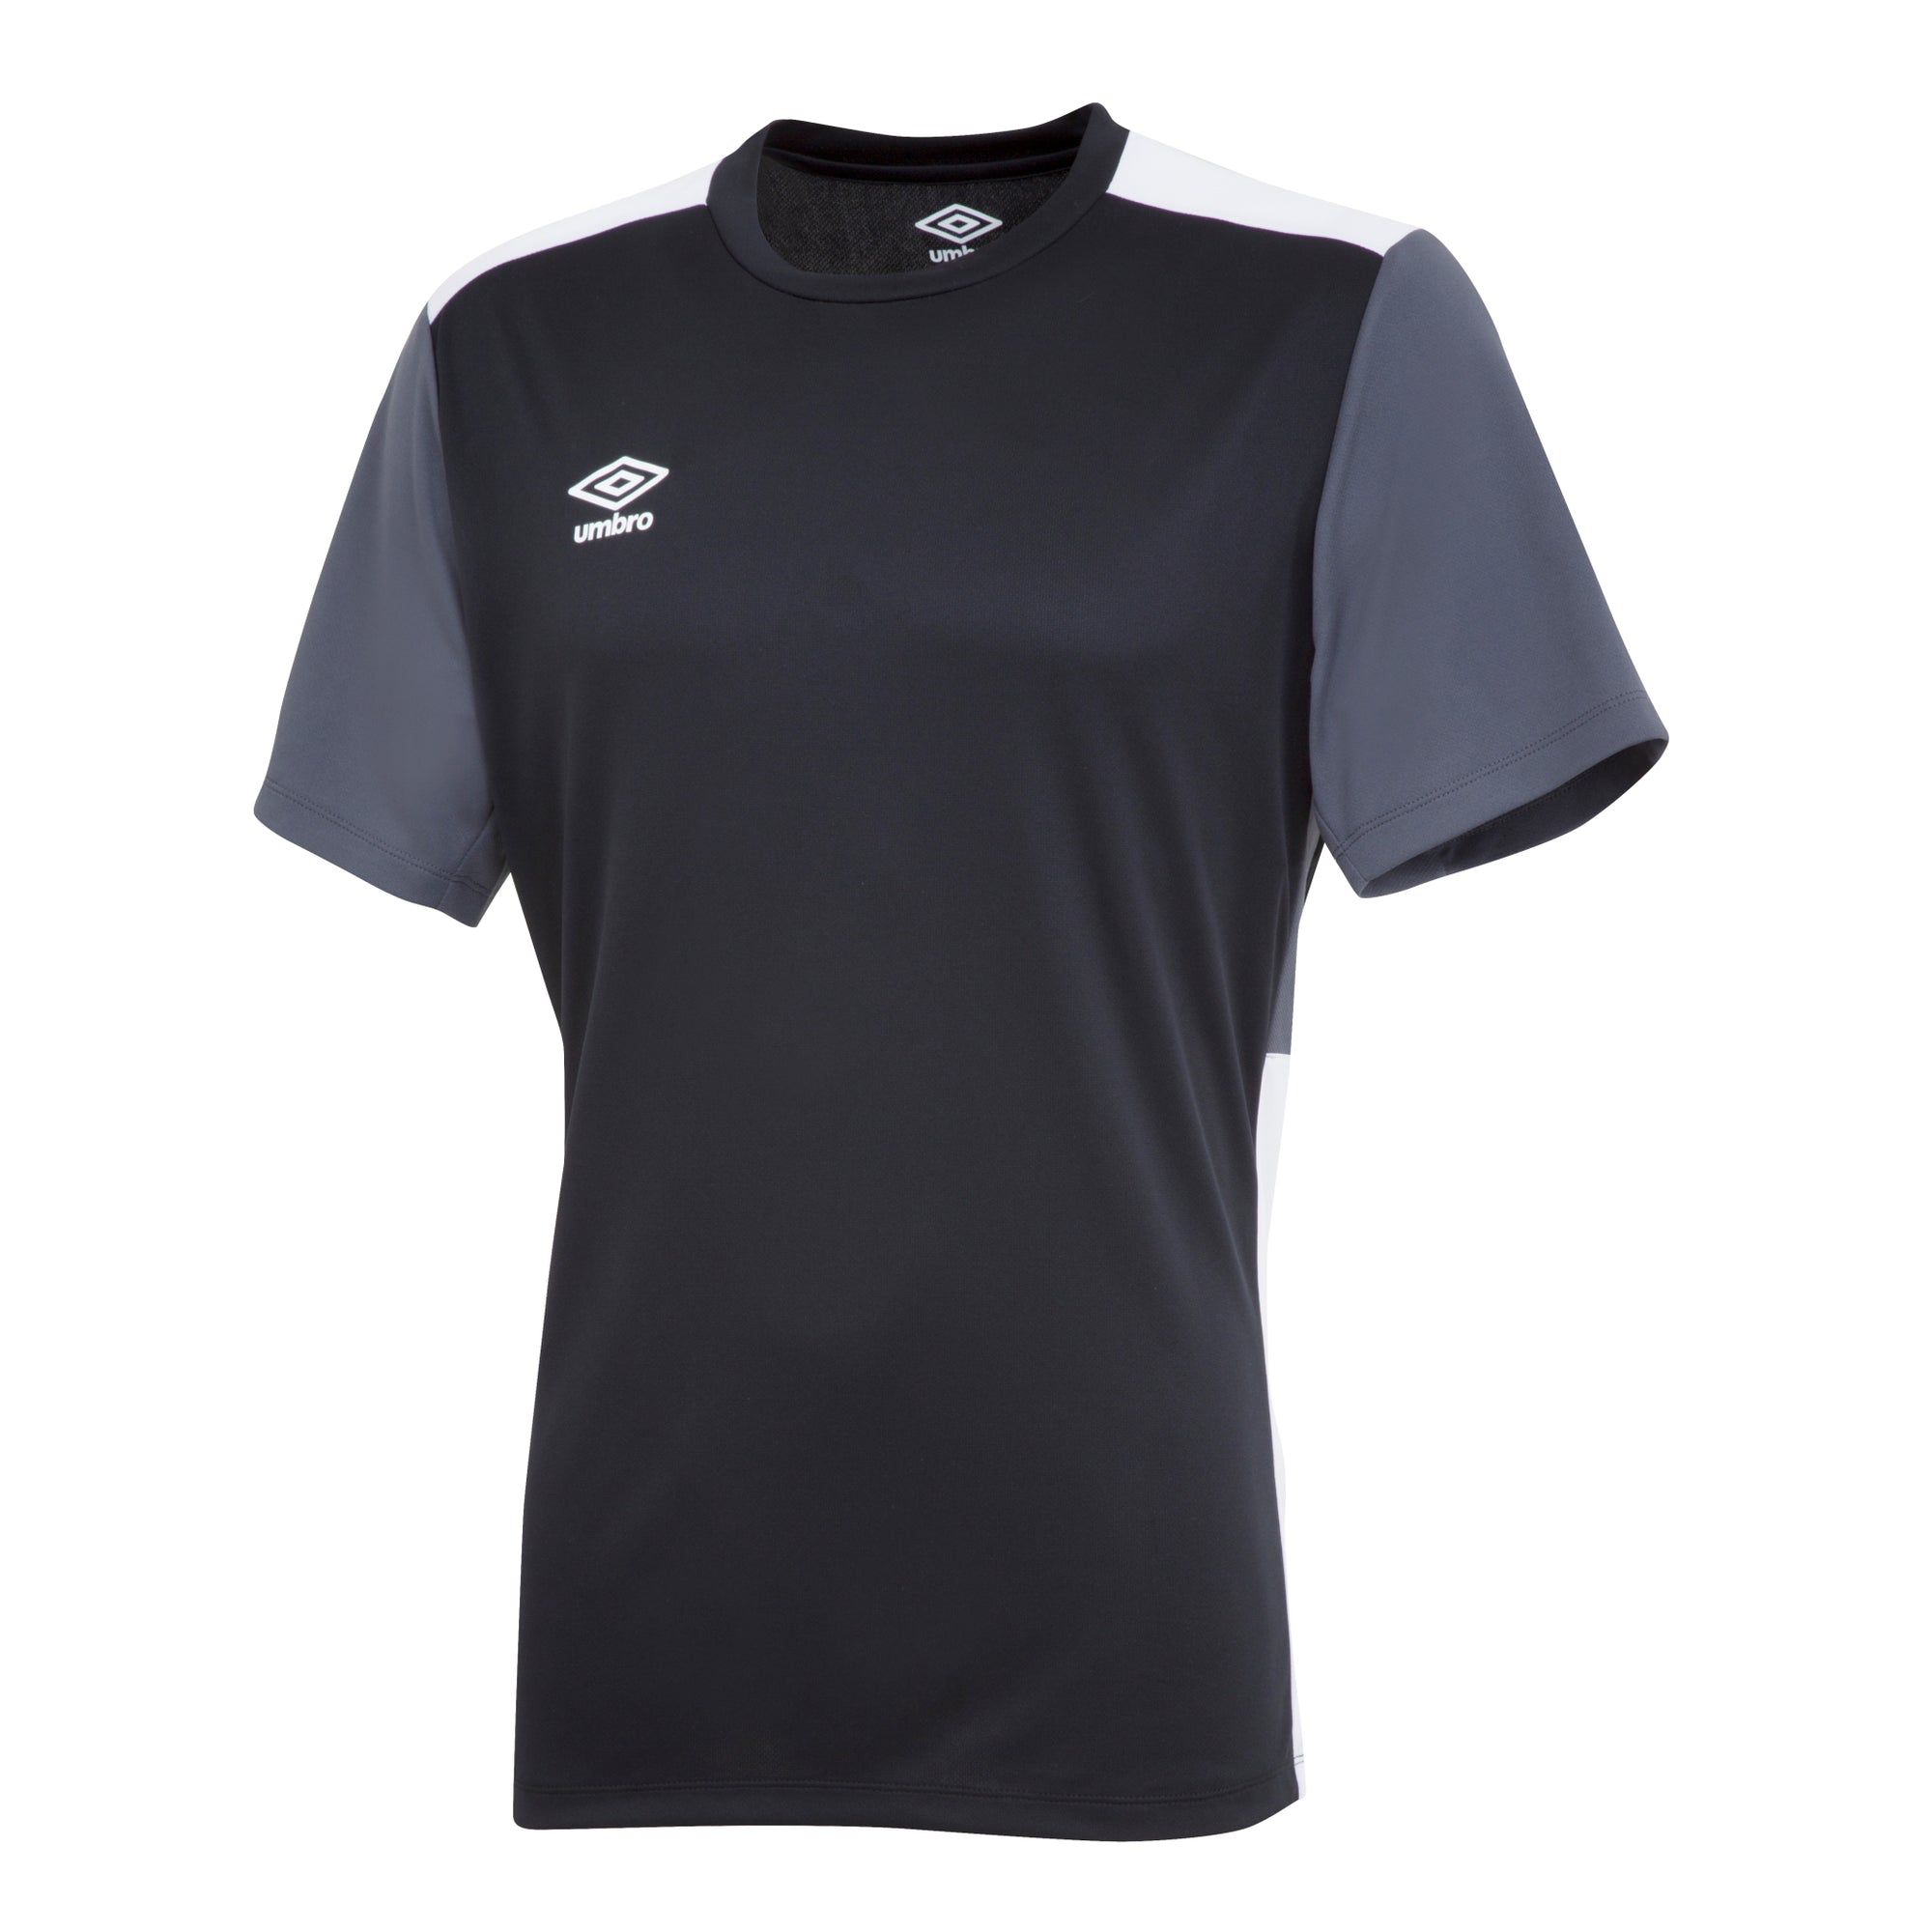 Umbro Training Jersey - Black/Carbon/White